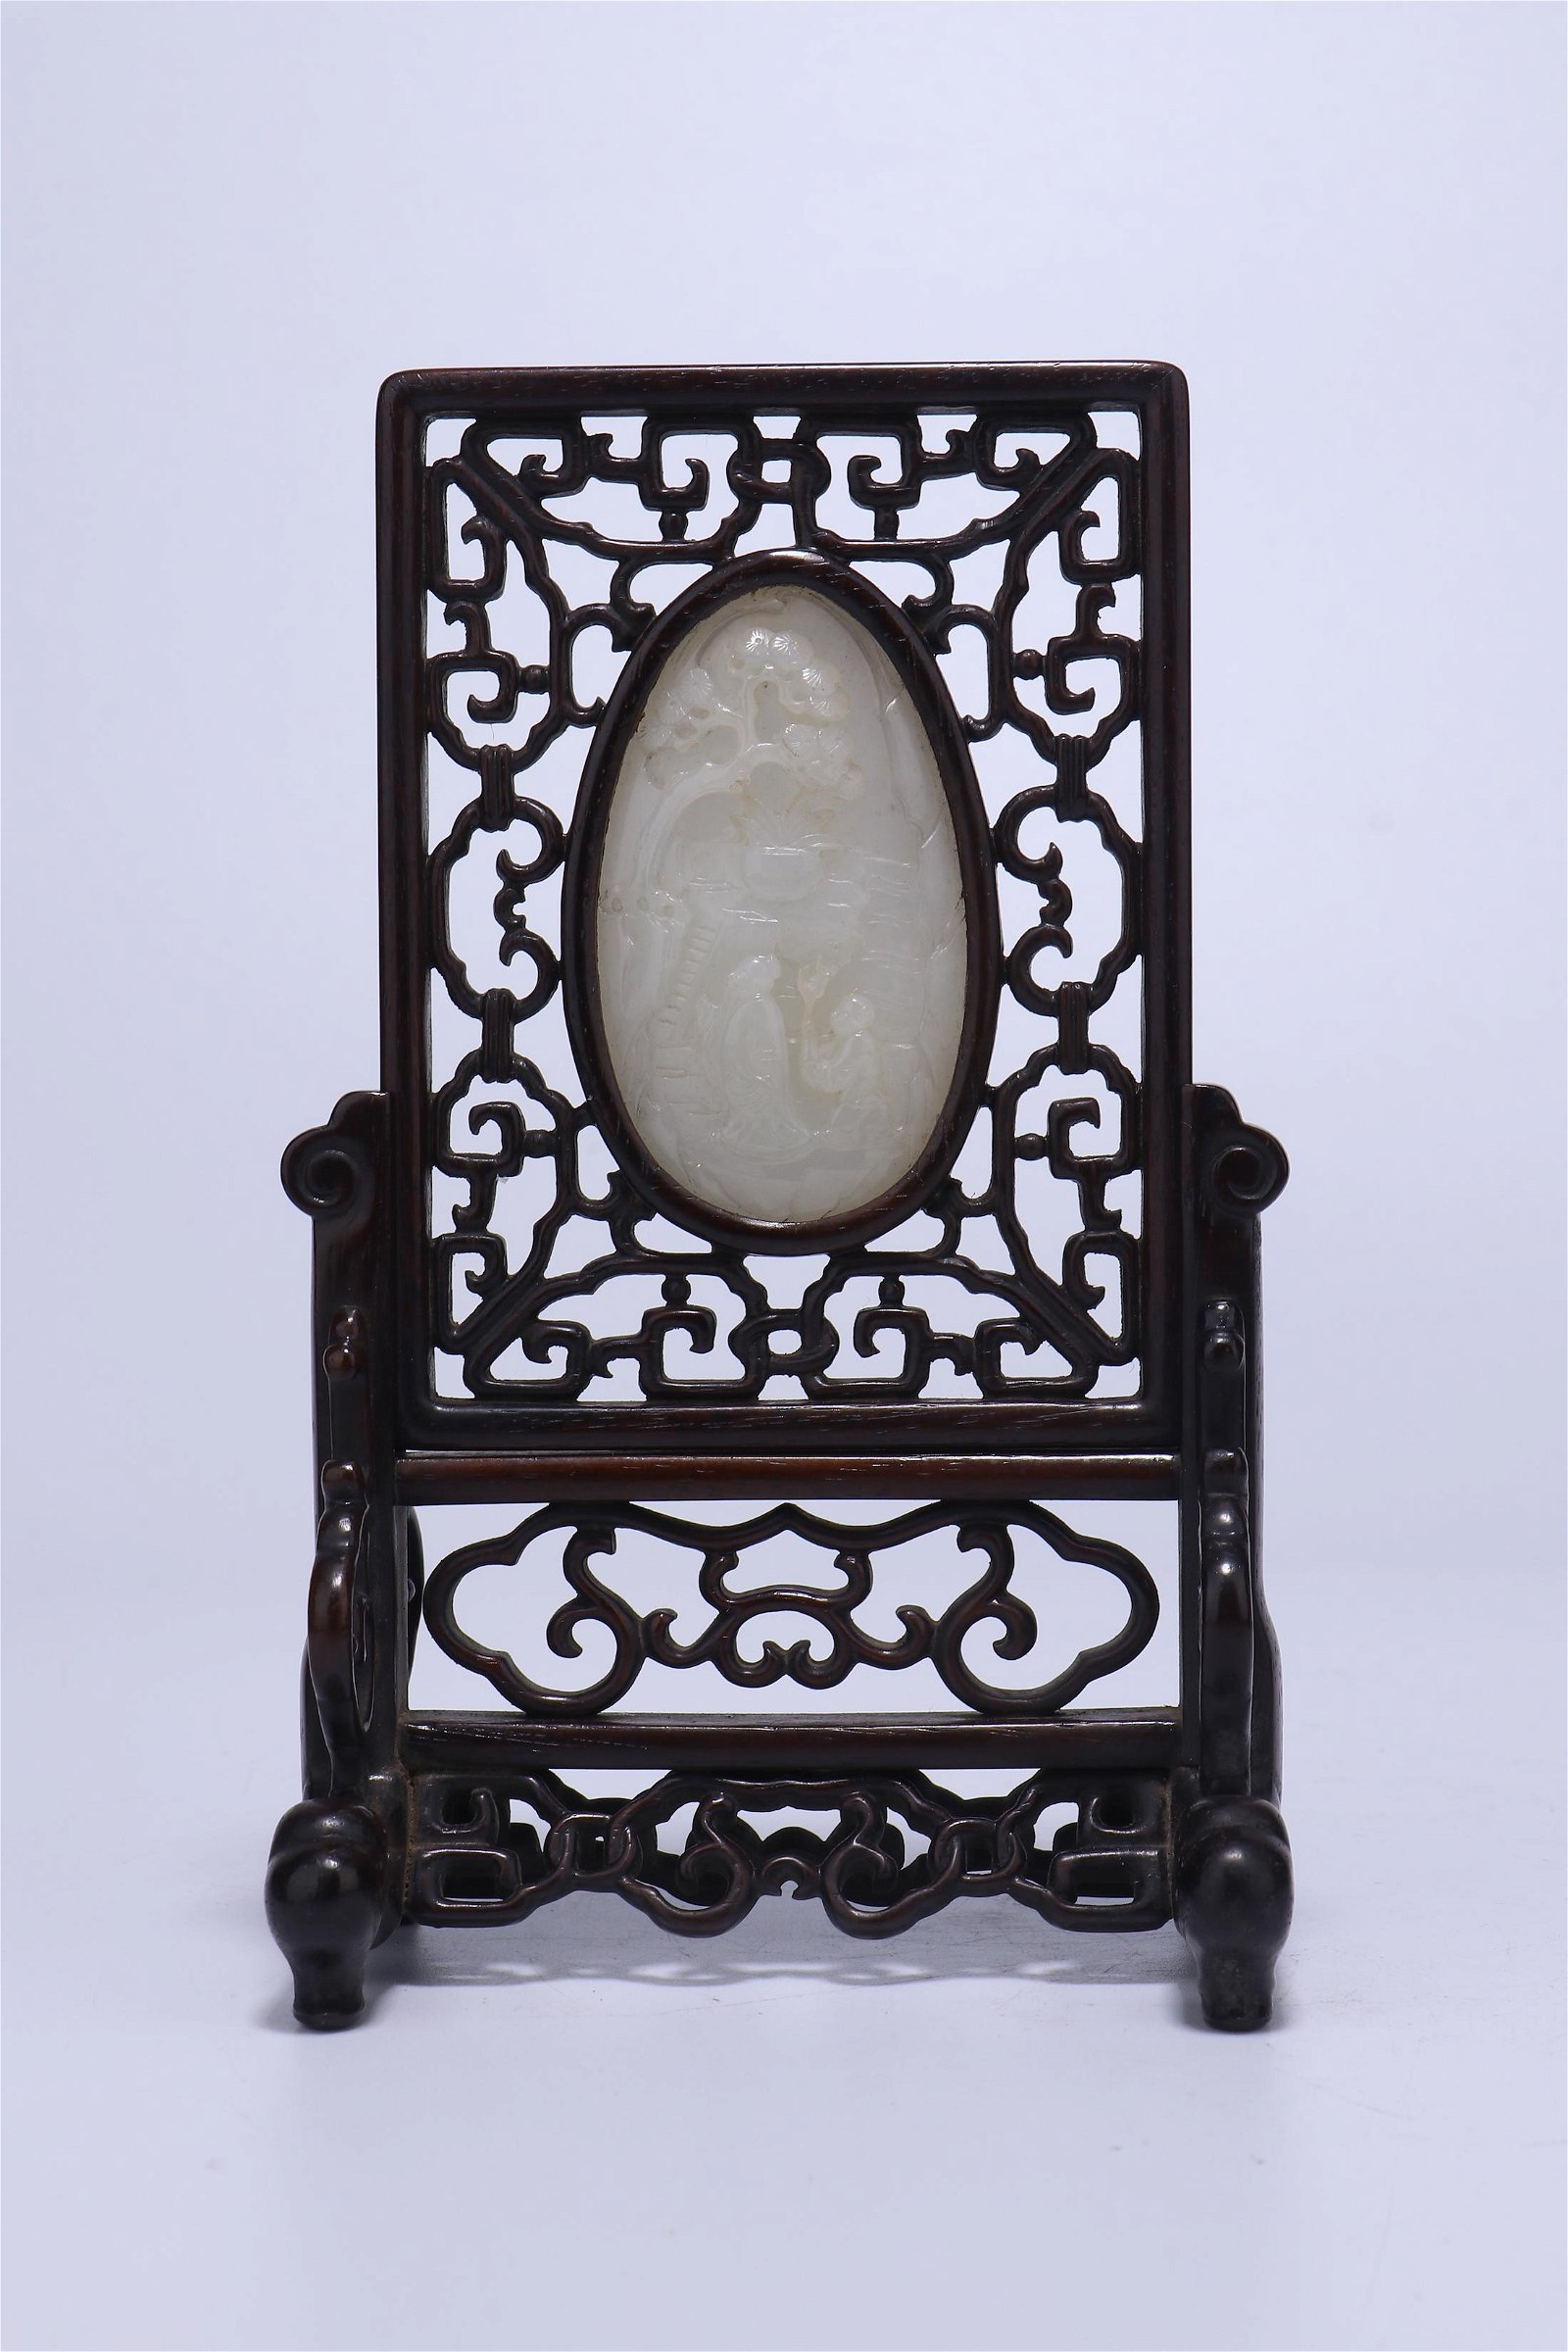 A CHINESE INLAID FINE WHITE JADE ROSEWOOD FRAME TABLE